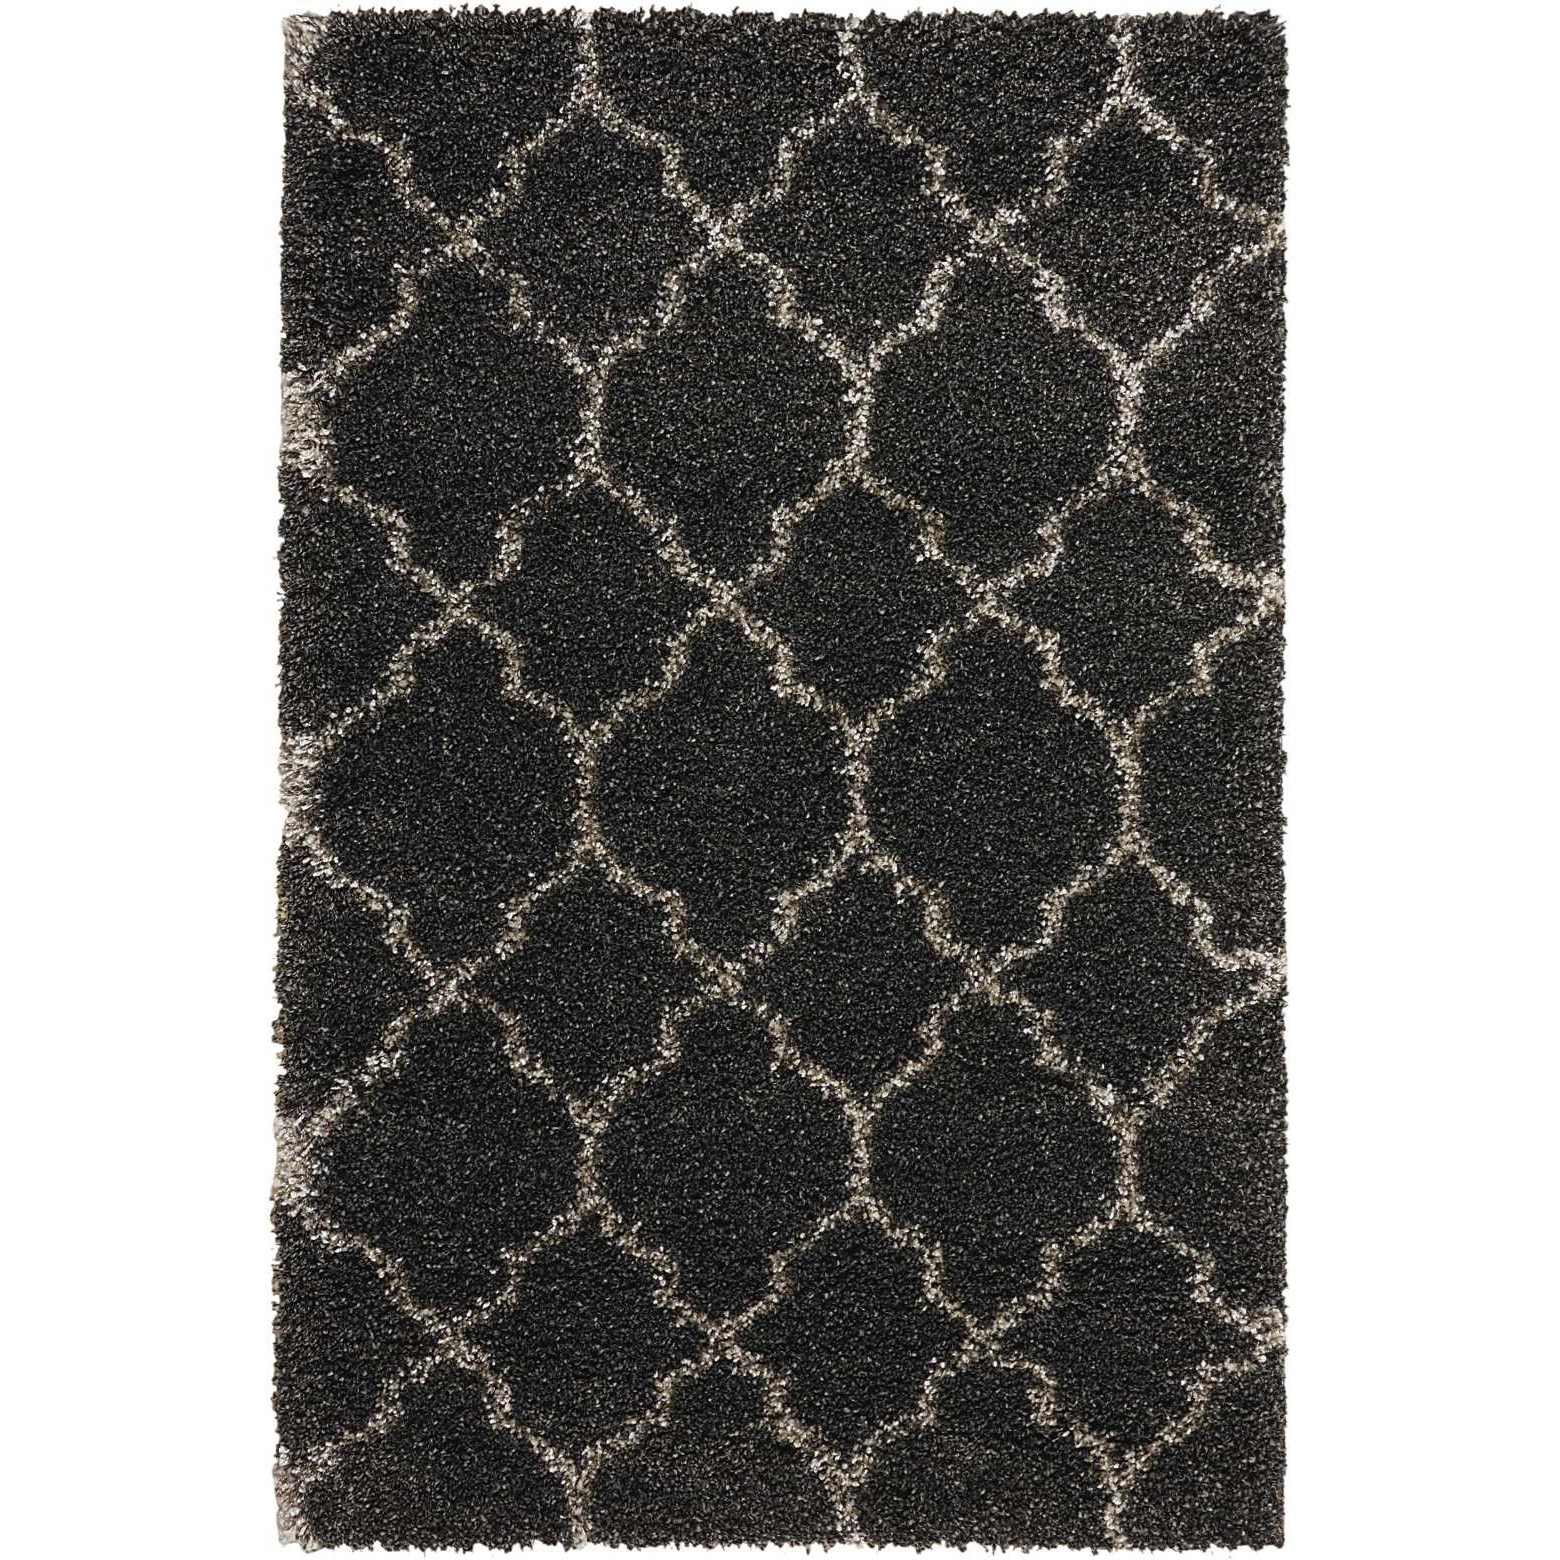 "Amore 3'2"" x 5' Charcoal Rectangle Rug by Nourison at Home Collections Furniture"